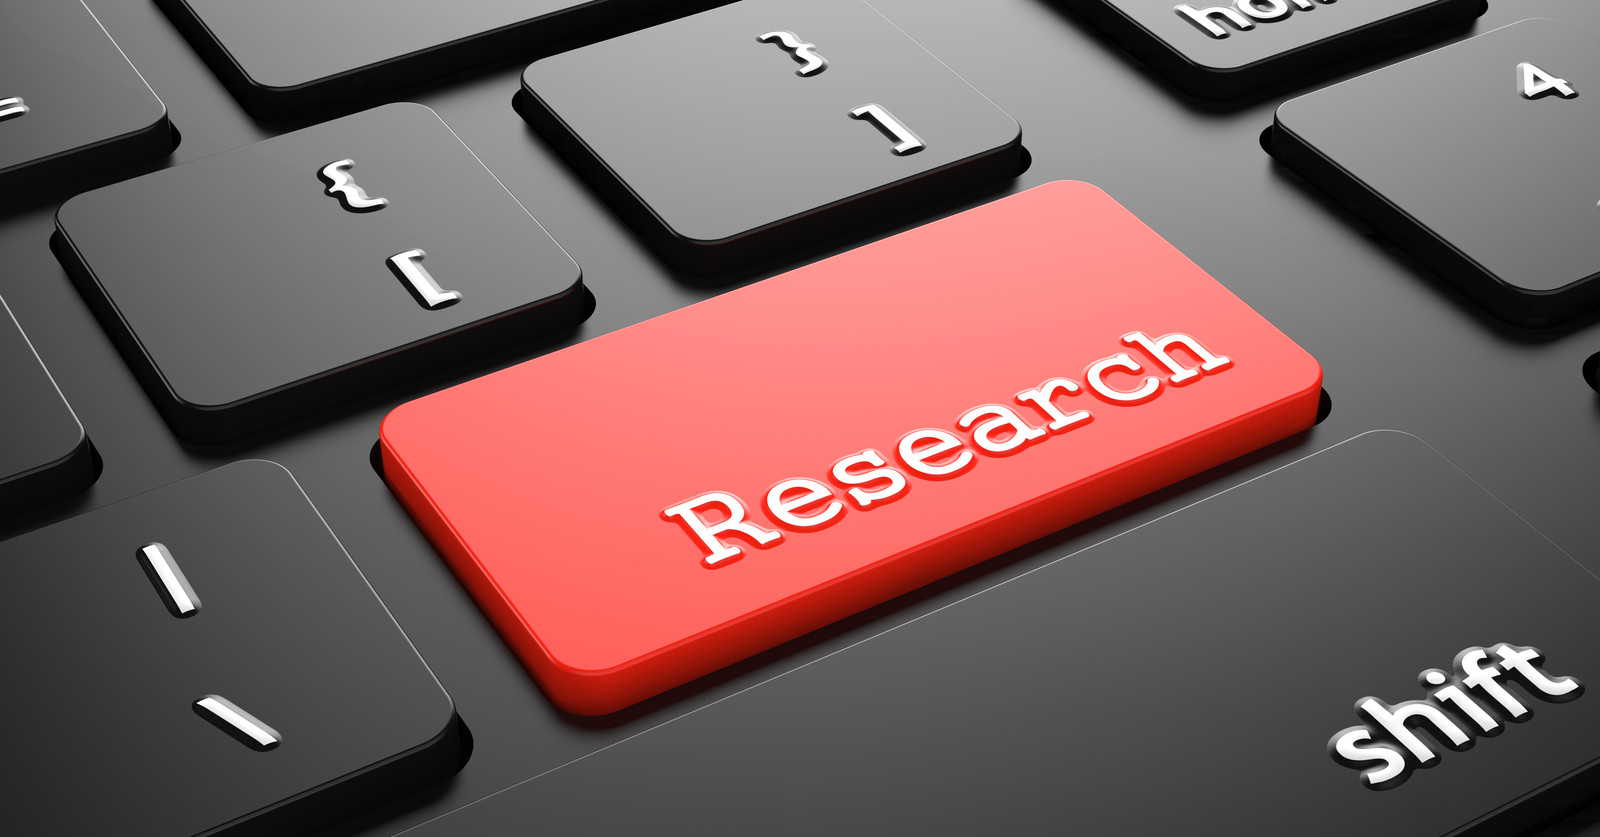 007 Researchkey Research Paper Best Site To Download Papers Unbelievable Free How From Ieee Google Scholar Full